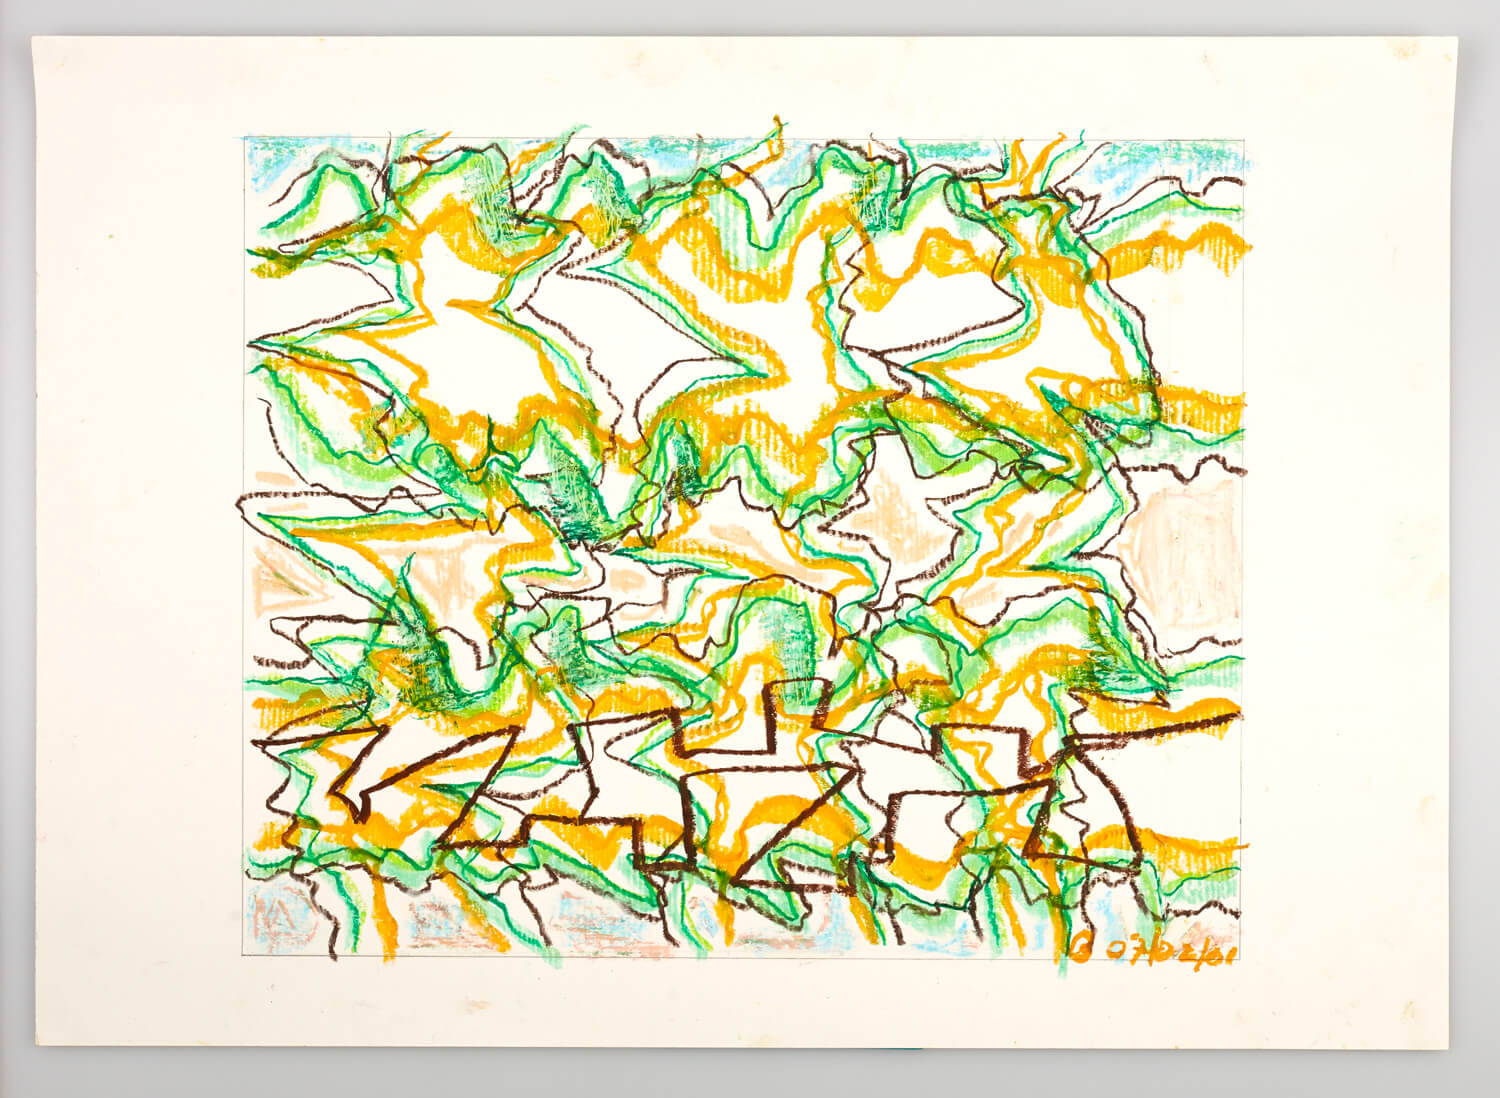 JB129 - Green, Yellow and Black Landscape - 2001 - 41 x 49 cm - Conte on paper